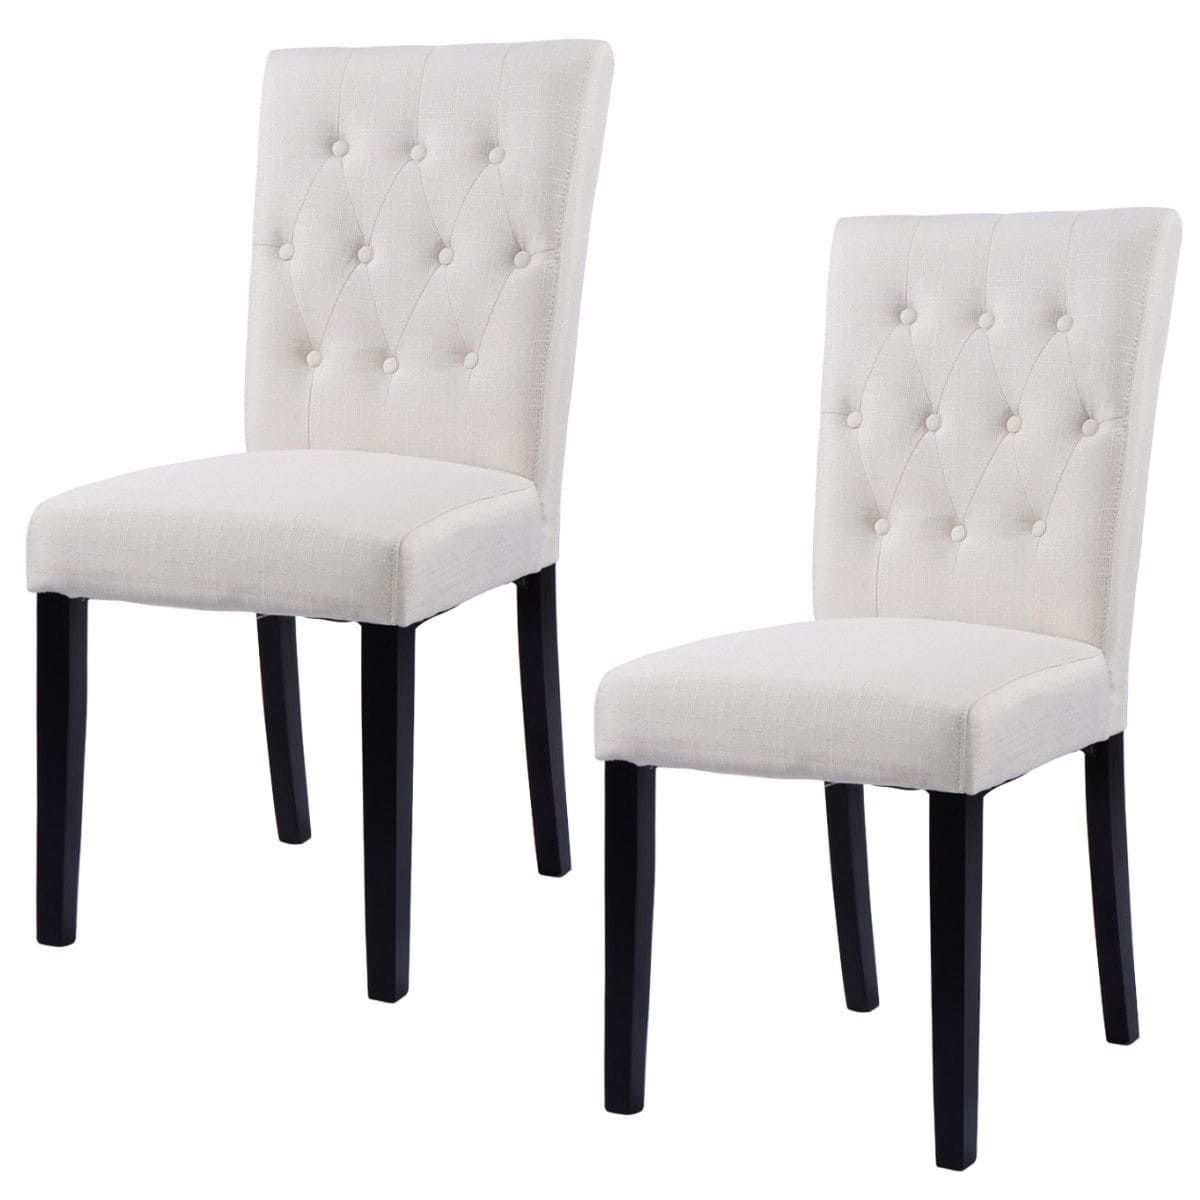 Costway Set of 2 Fabric Dining Chair Armless Chair Home Kitchen ...